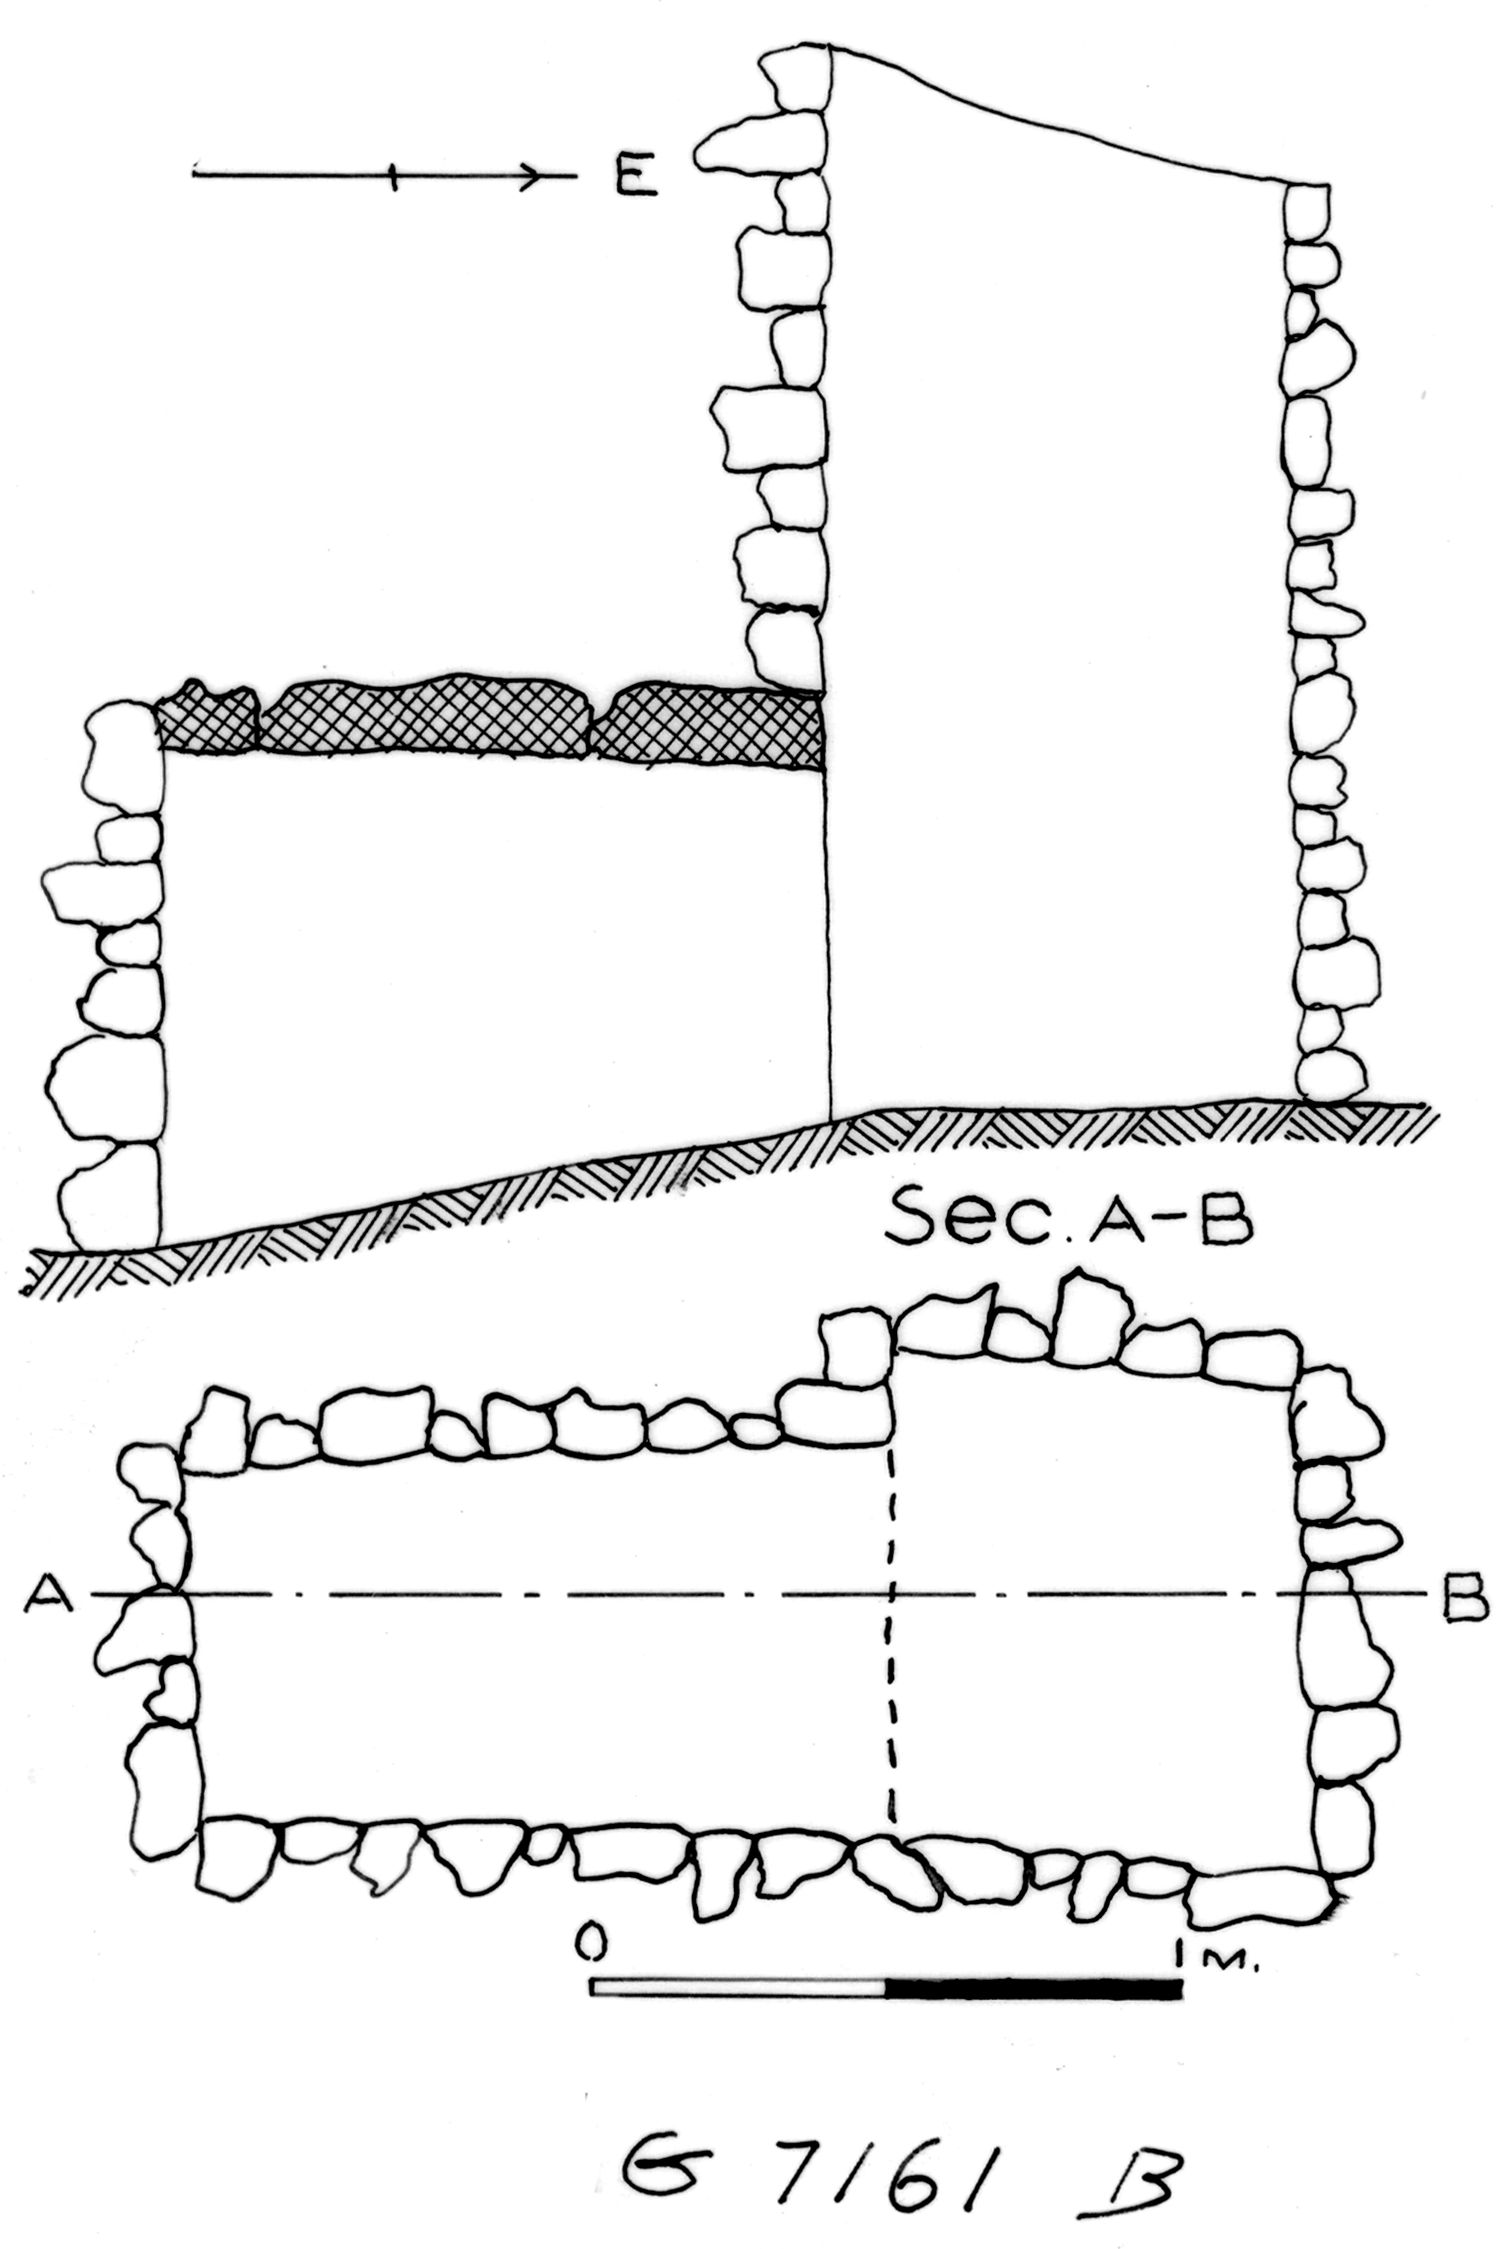 Maps and plans: G 7161, Shaft B